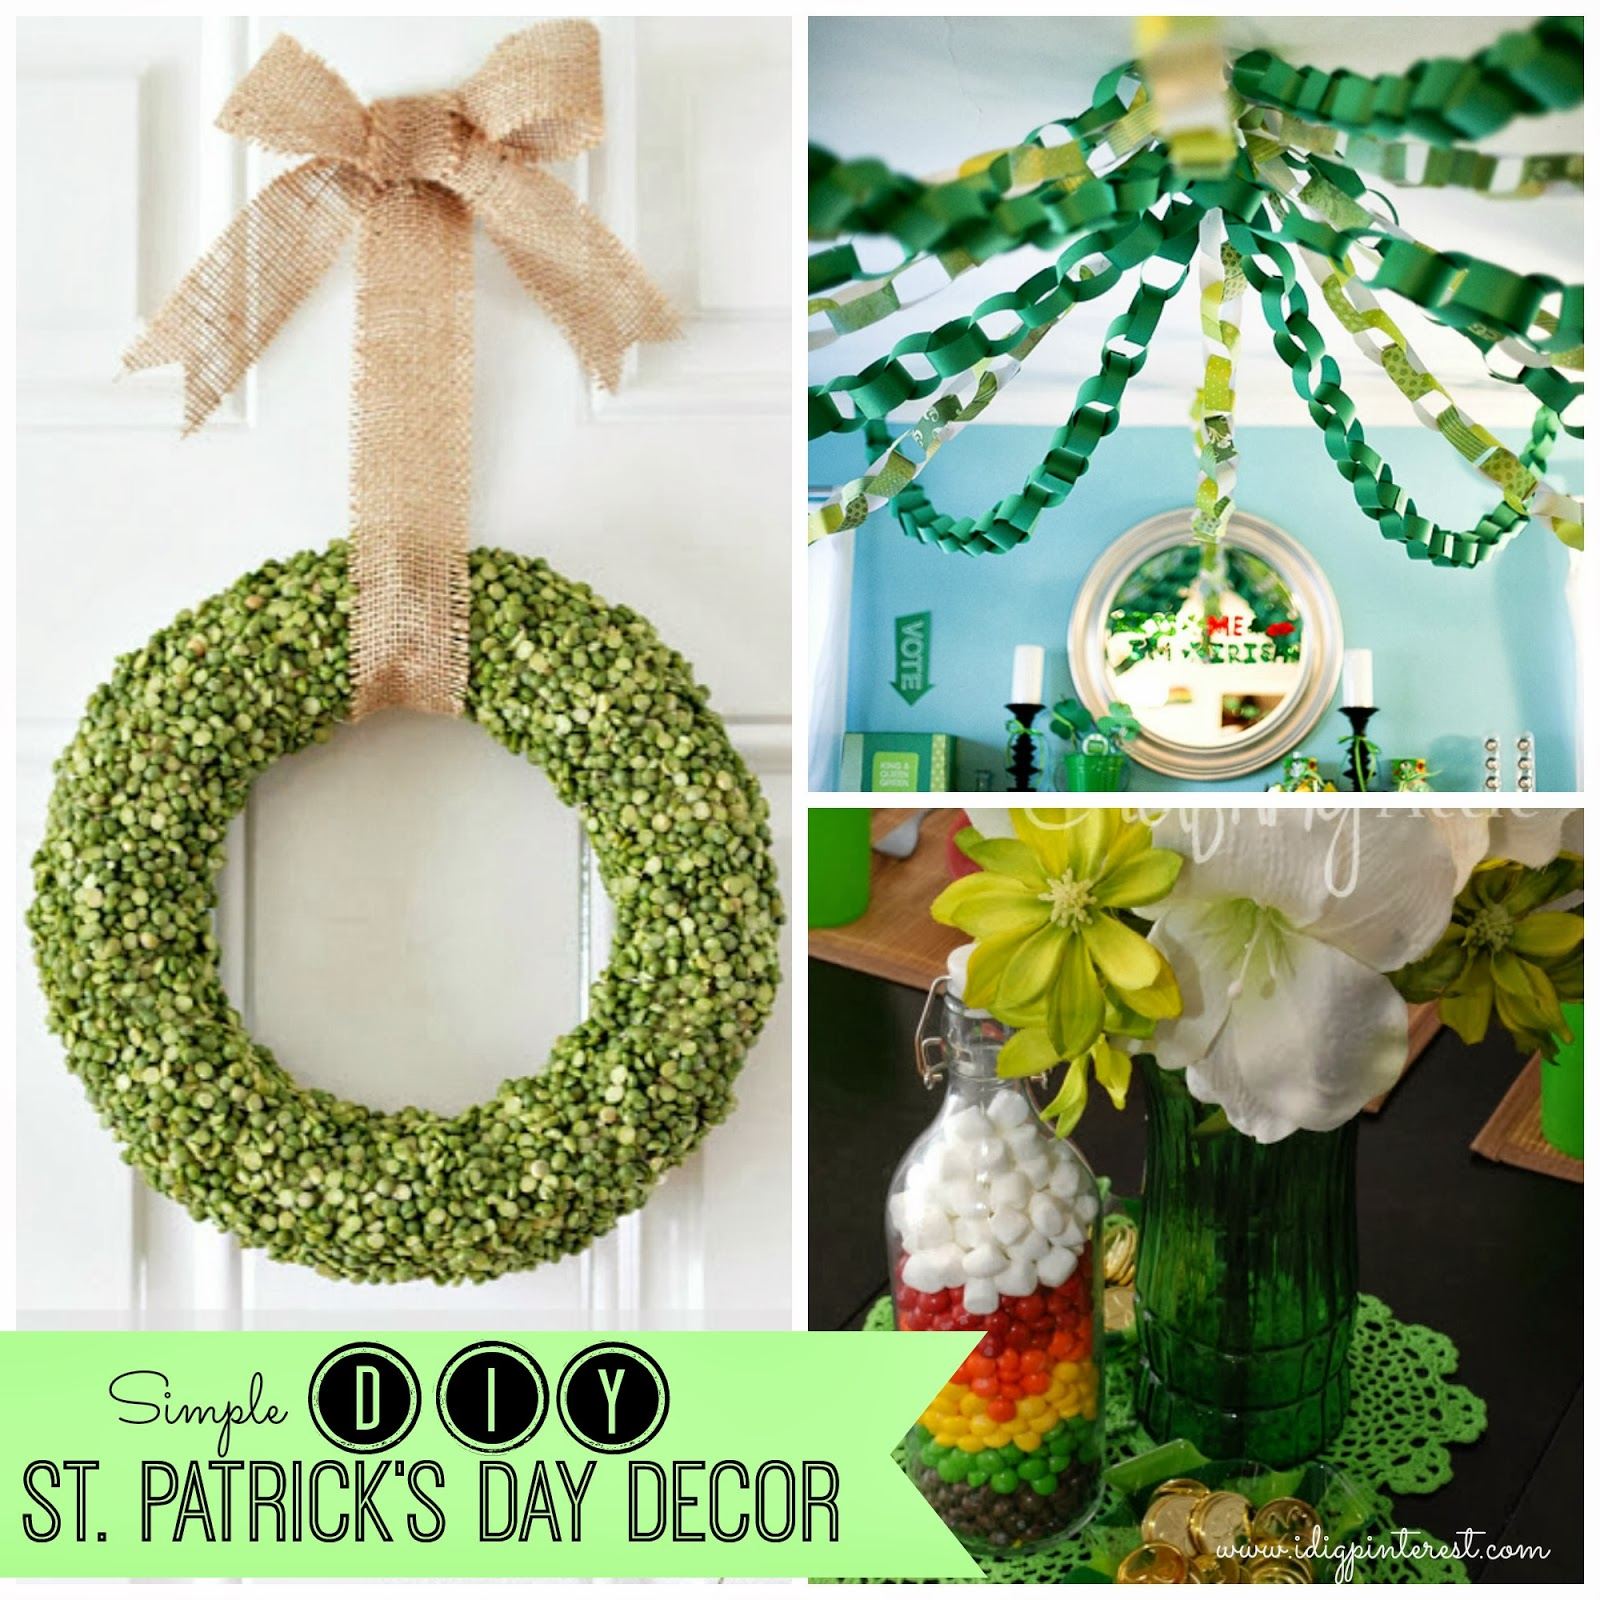 Simple Inexpensive DIY St Patricks Day Decor I Dig Pinterest - Best diy st patricks day decorations ideas